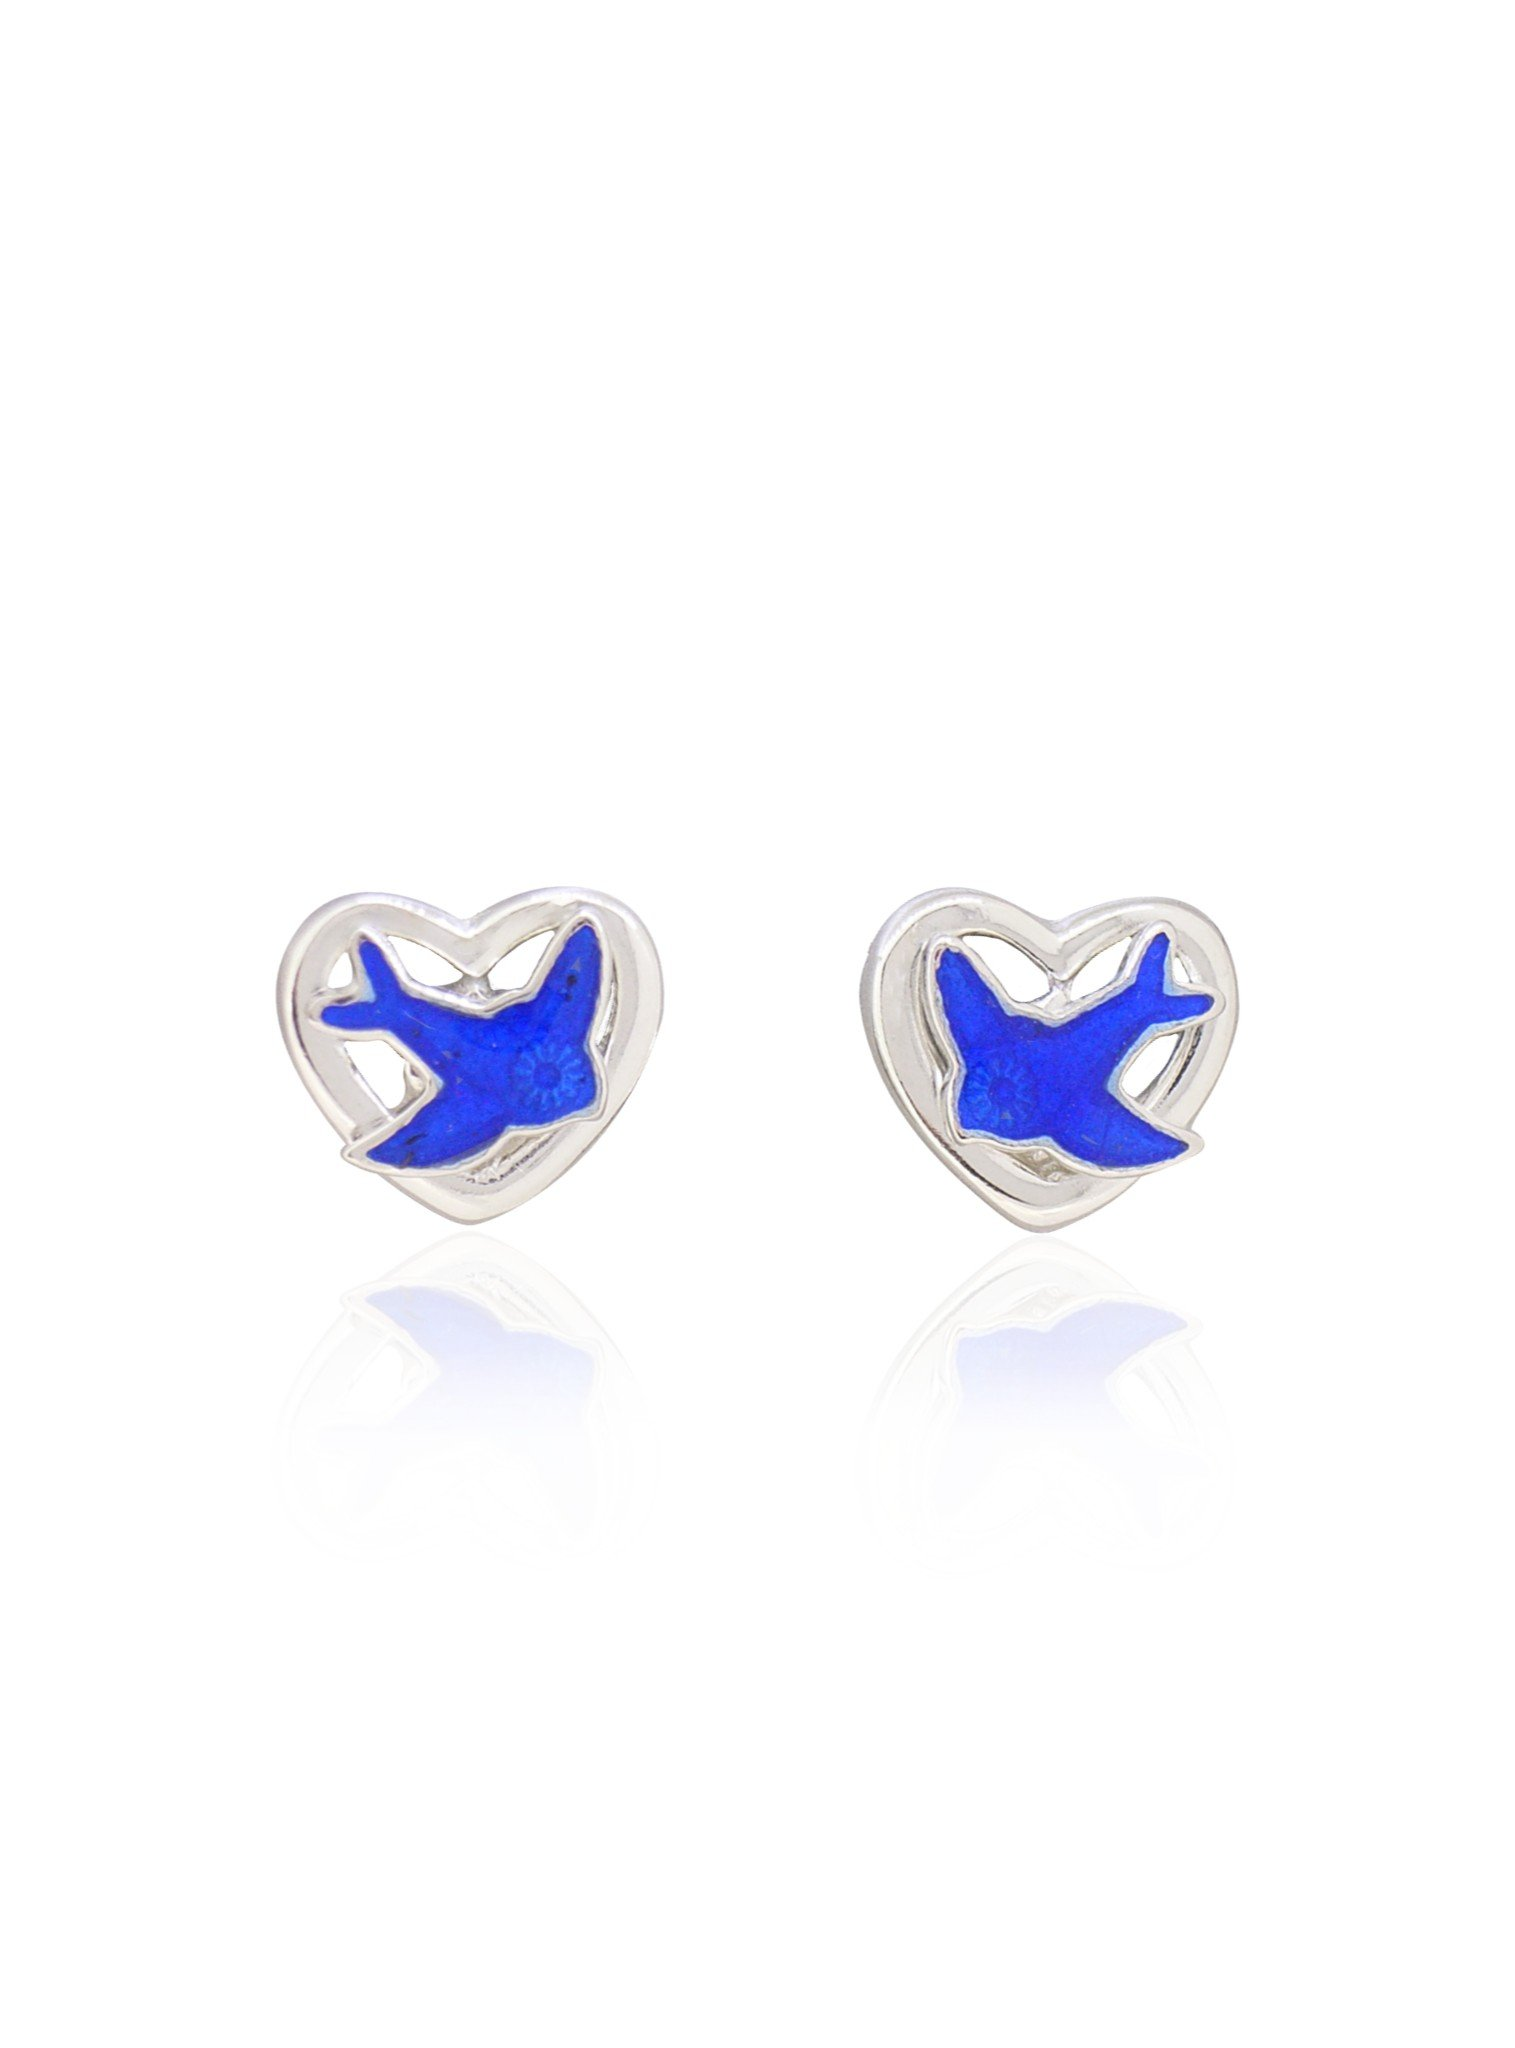 Bluebird Of Happiness Love Heart Charm Necklace And Earrings Set In St The Jewel Shop